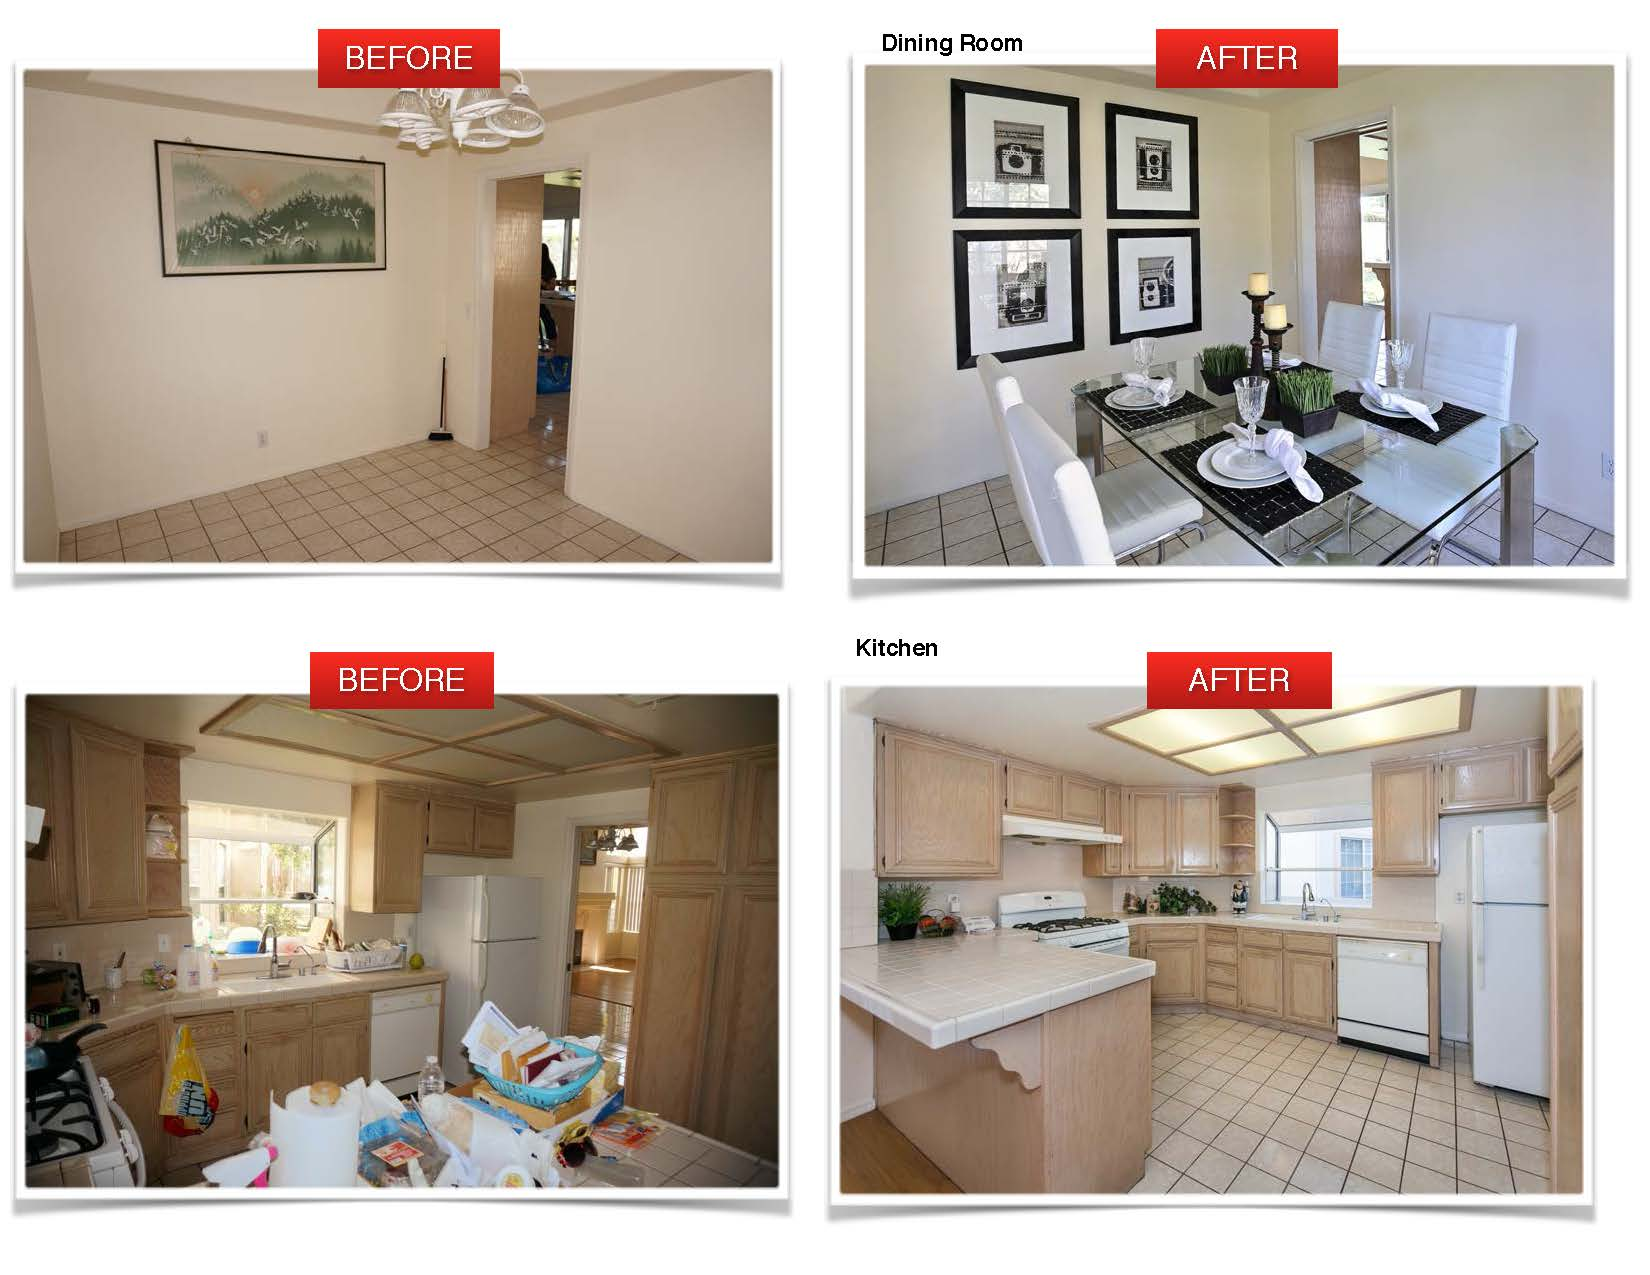 4437 Eileen Lane-before vs. after_Page_2